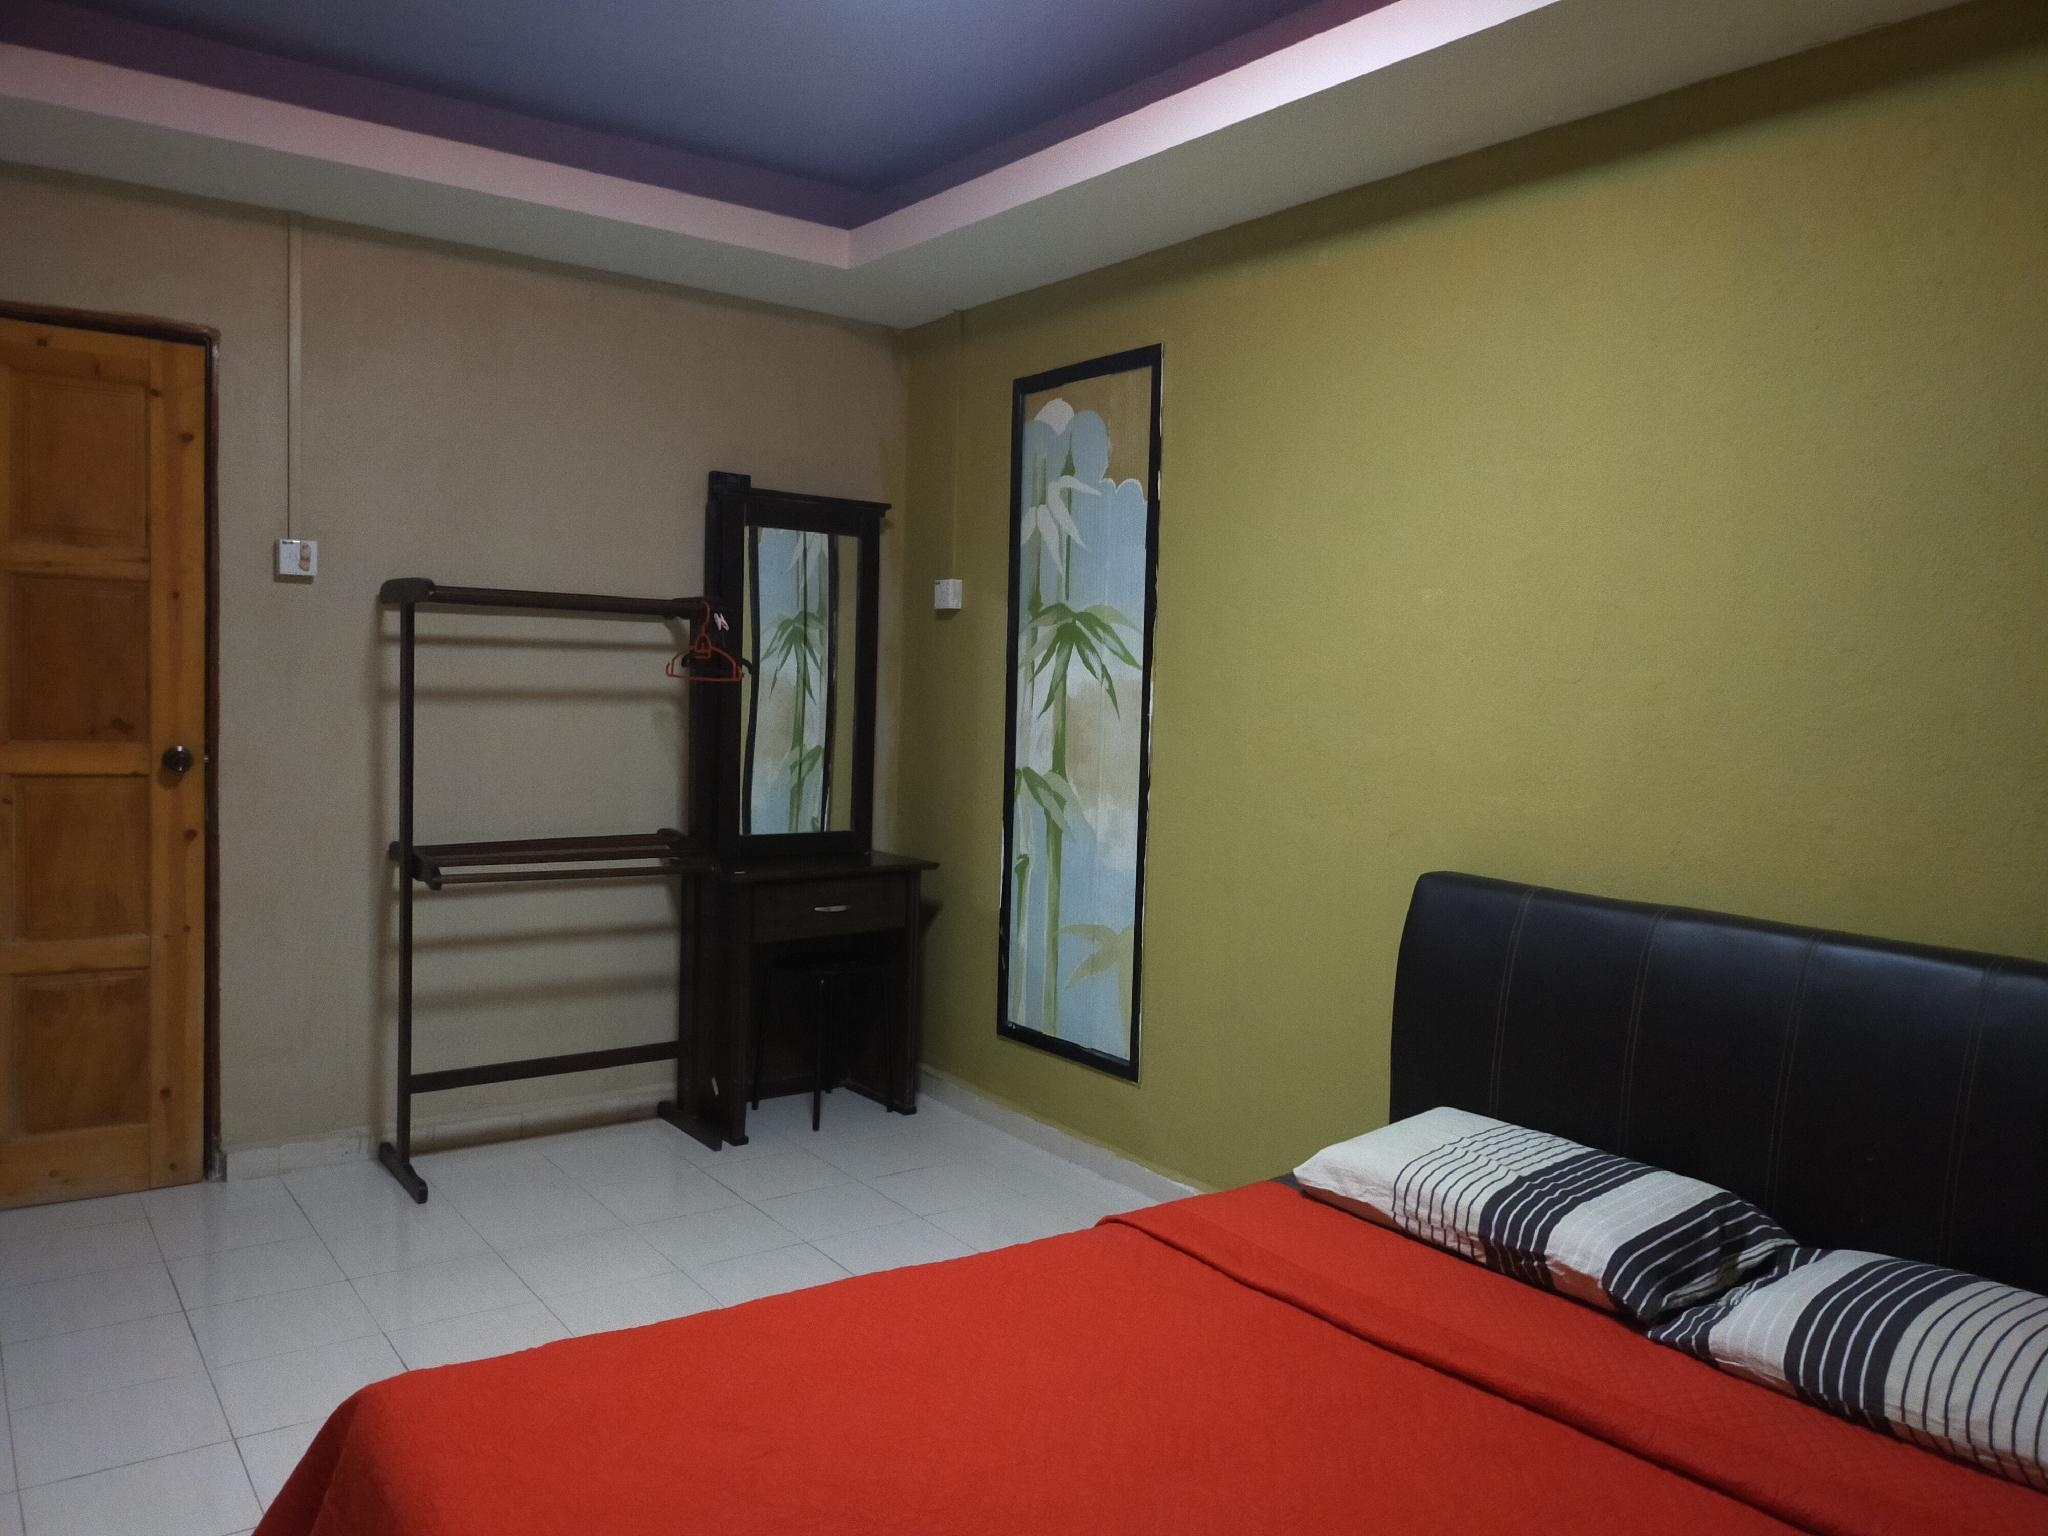 Guesthouse That Values For Money And Peace In Mind